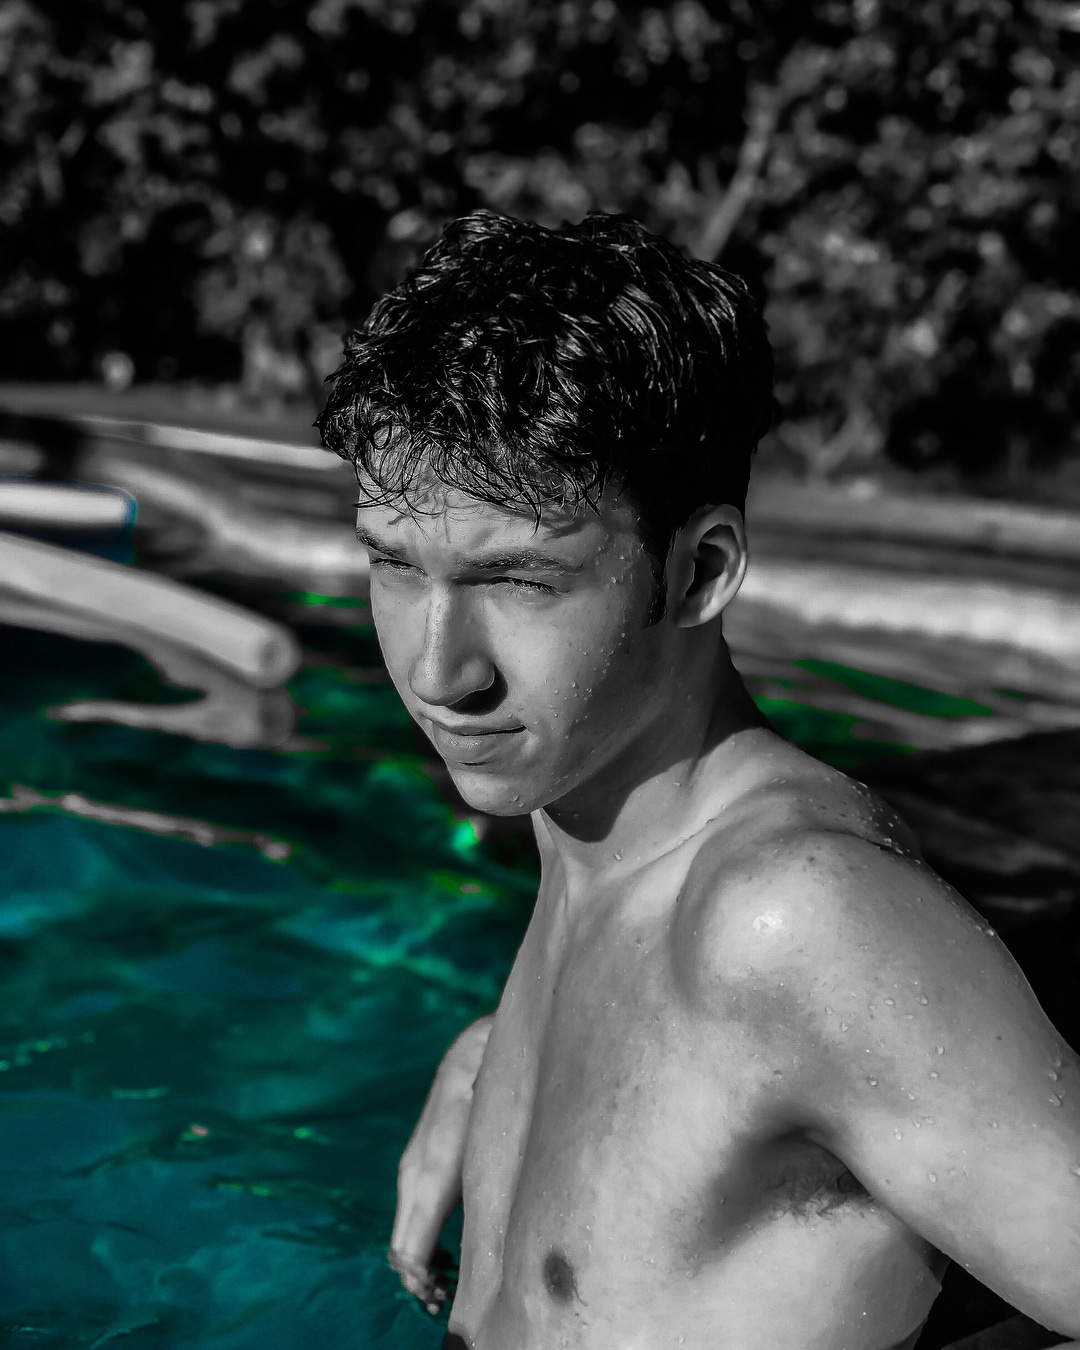 devin druid in pool